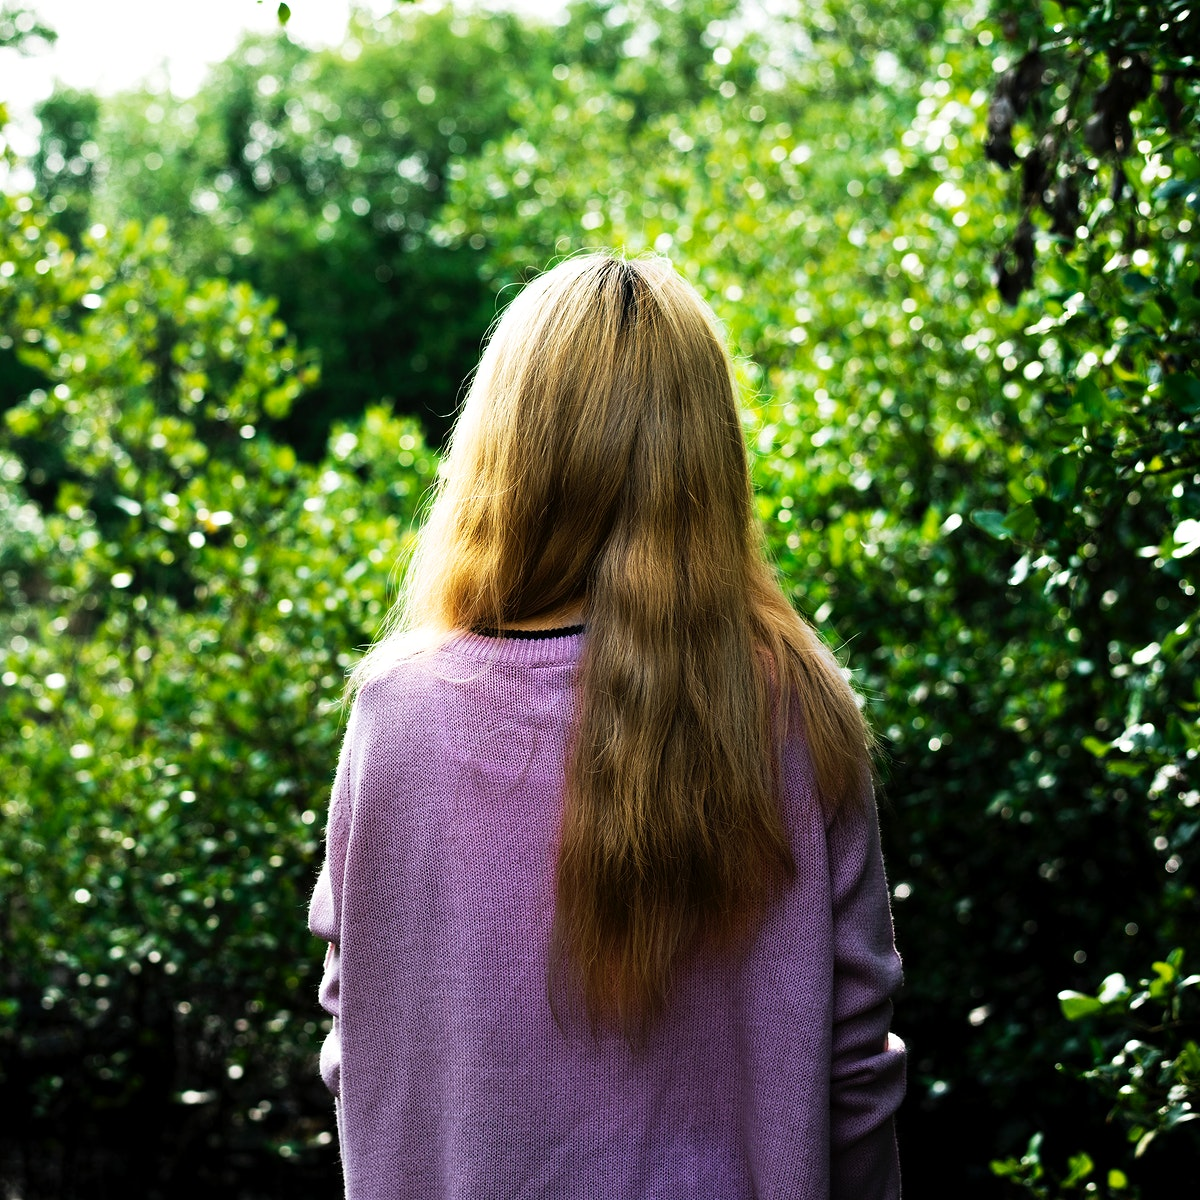 Rear view of woman with long hair in the garden